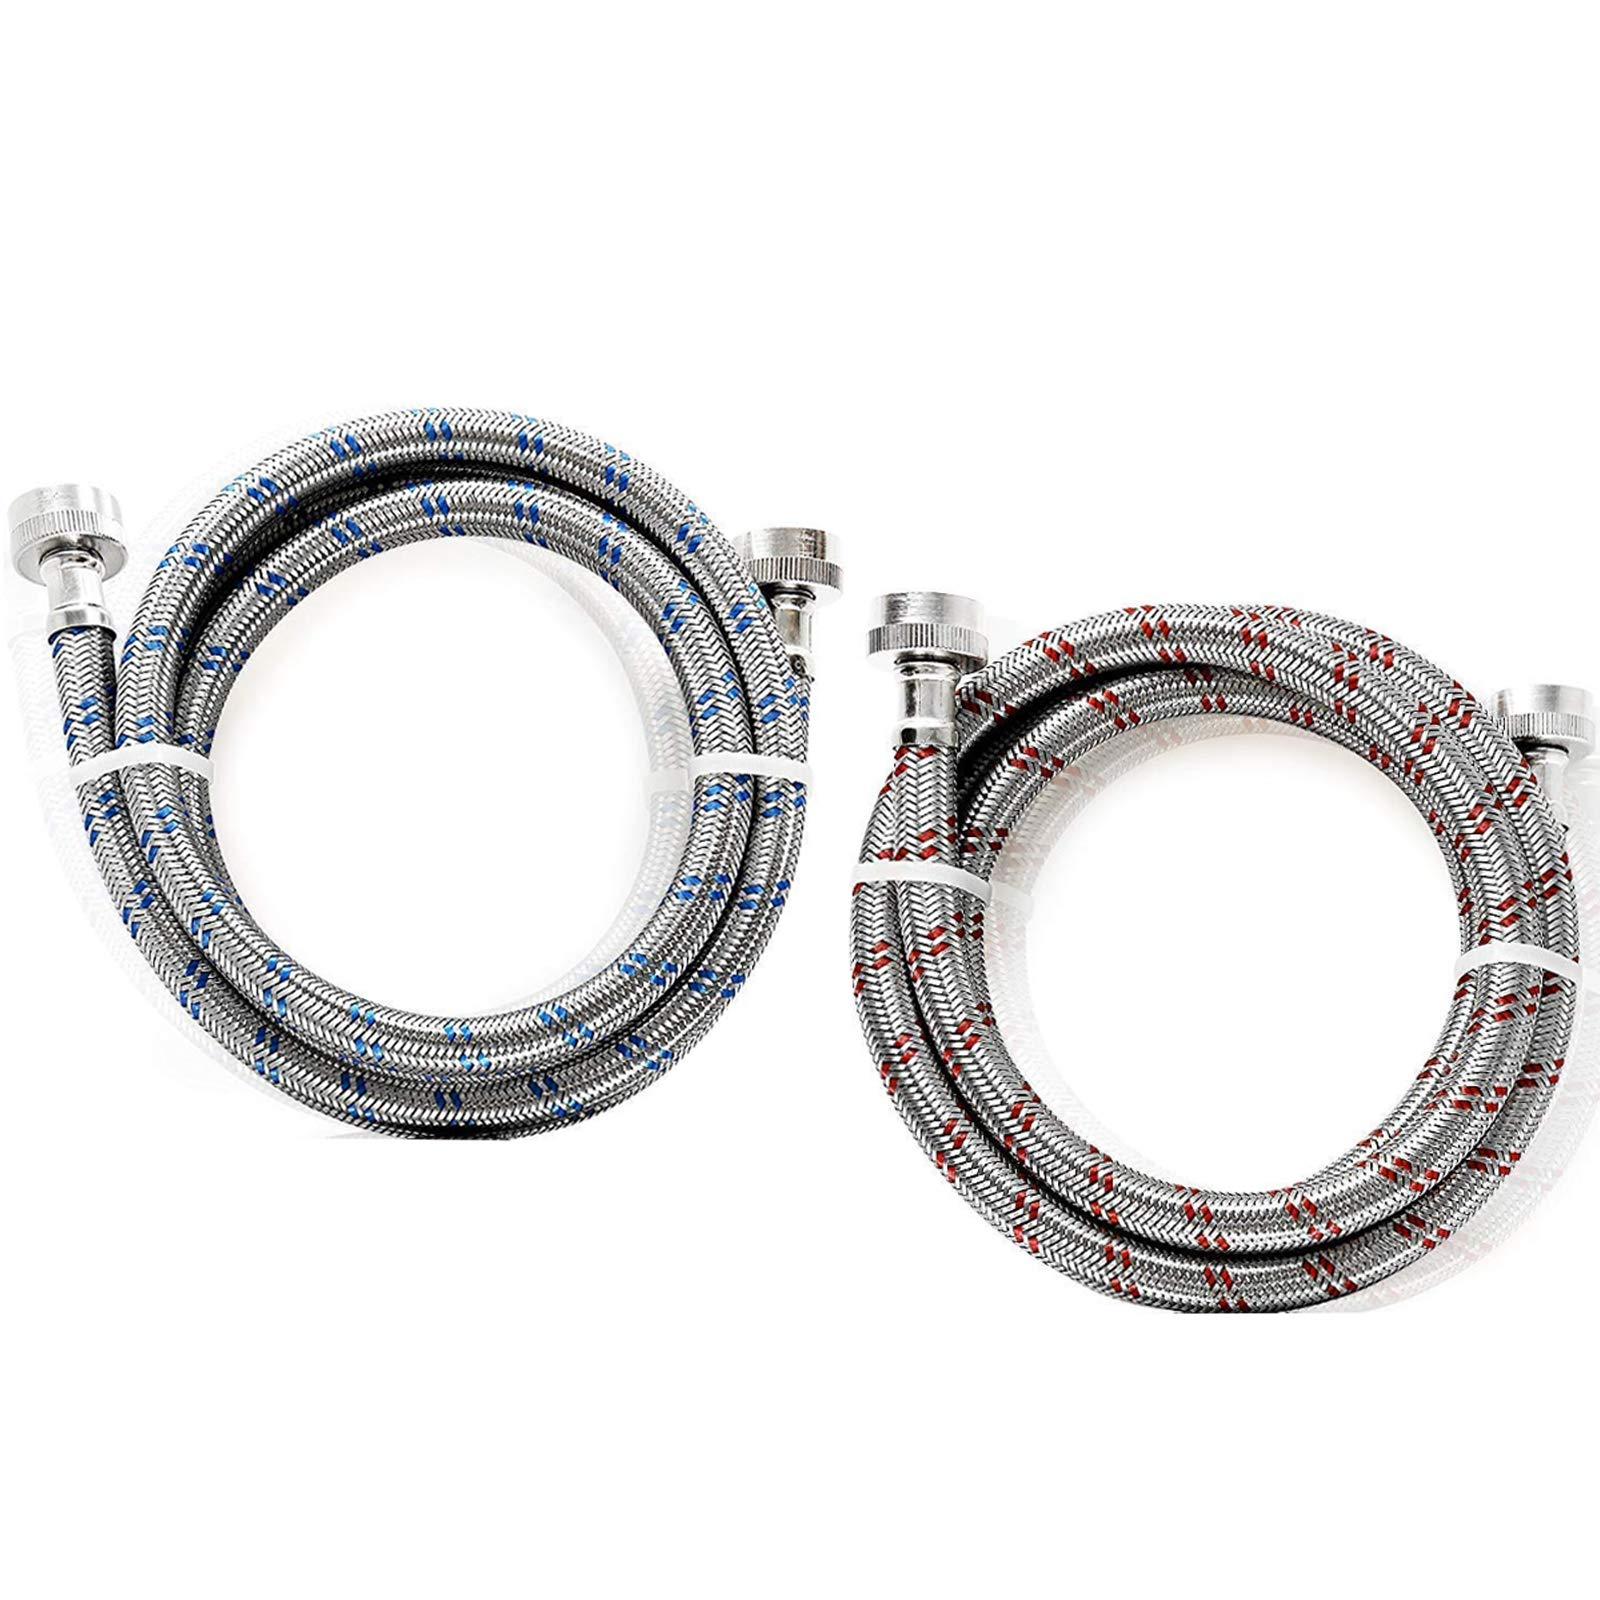 4yourhome Stainless Steel Extra Long Premium Washing Machine Hoses, 6 Ft Burst Proof (2 Pack) Red and Blue Marked Water Supply Lines by 4 Your Home